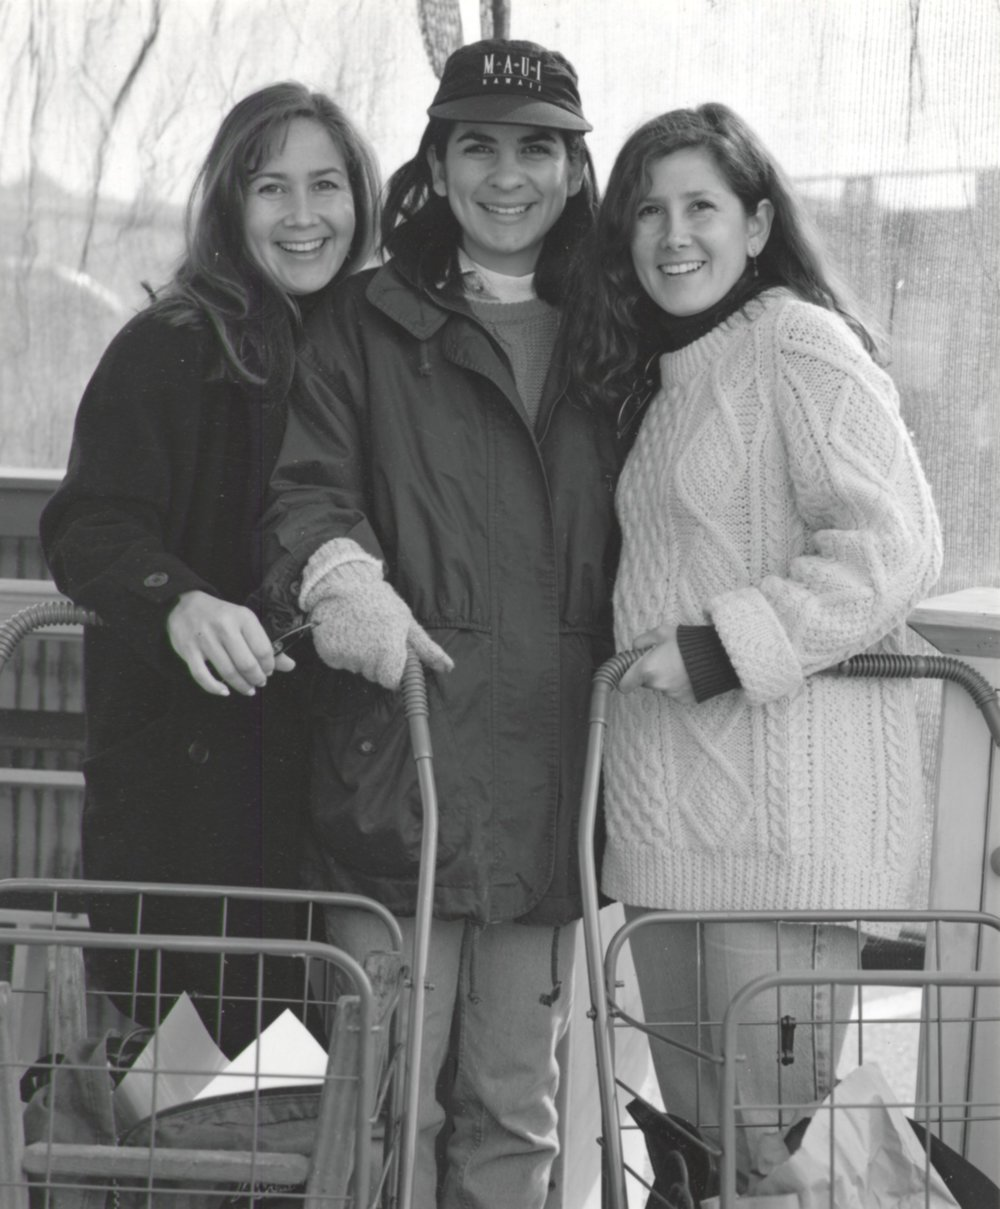 Three Sisters Shopping - Pasadena CA 1994